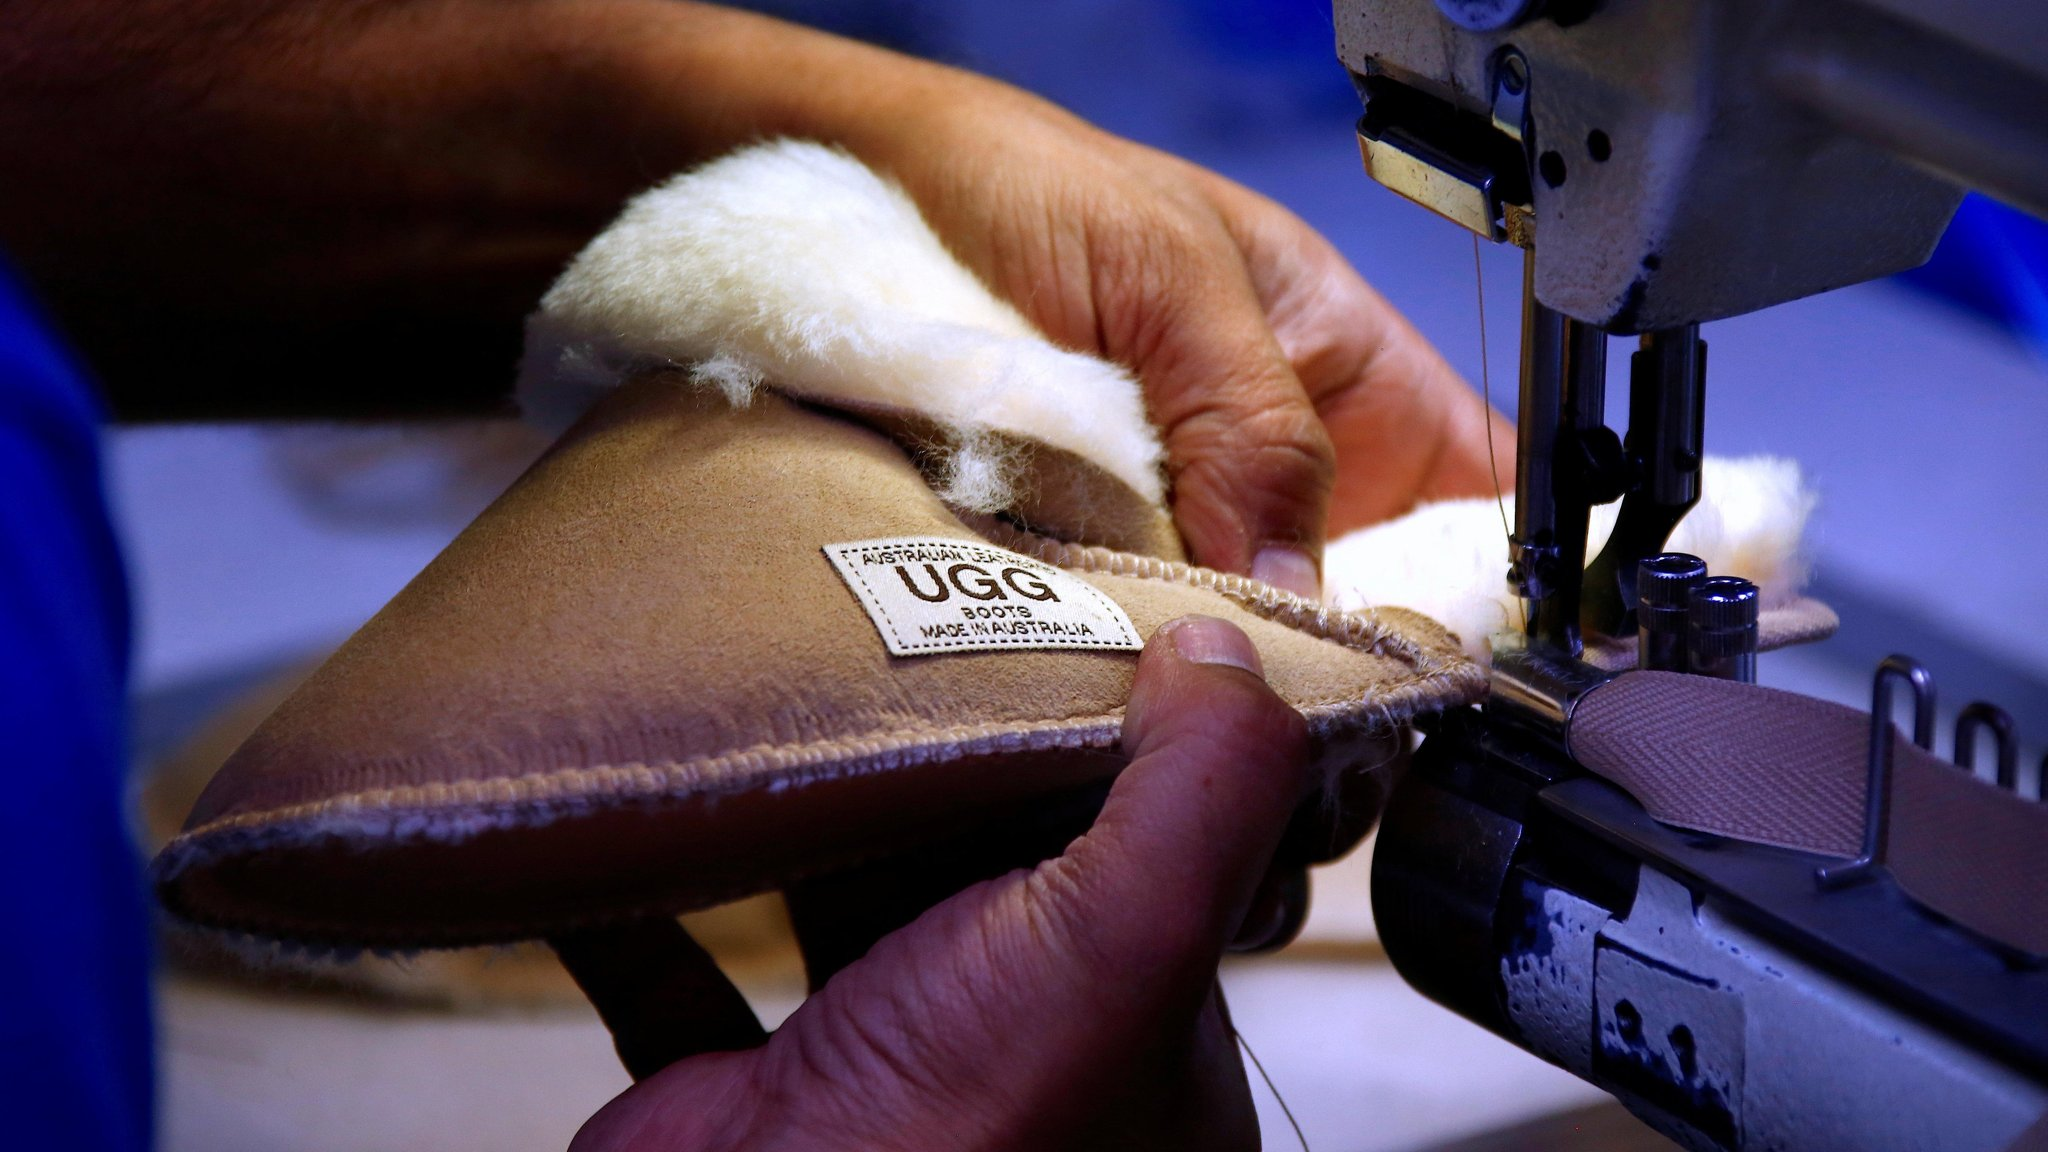 d78e2abe1ad Don't throw away your old Uggs | Financial Times